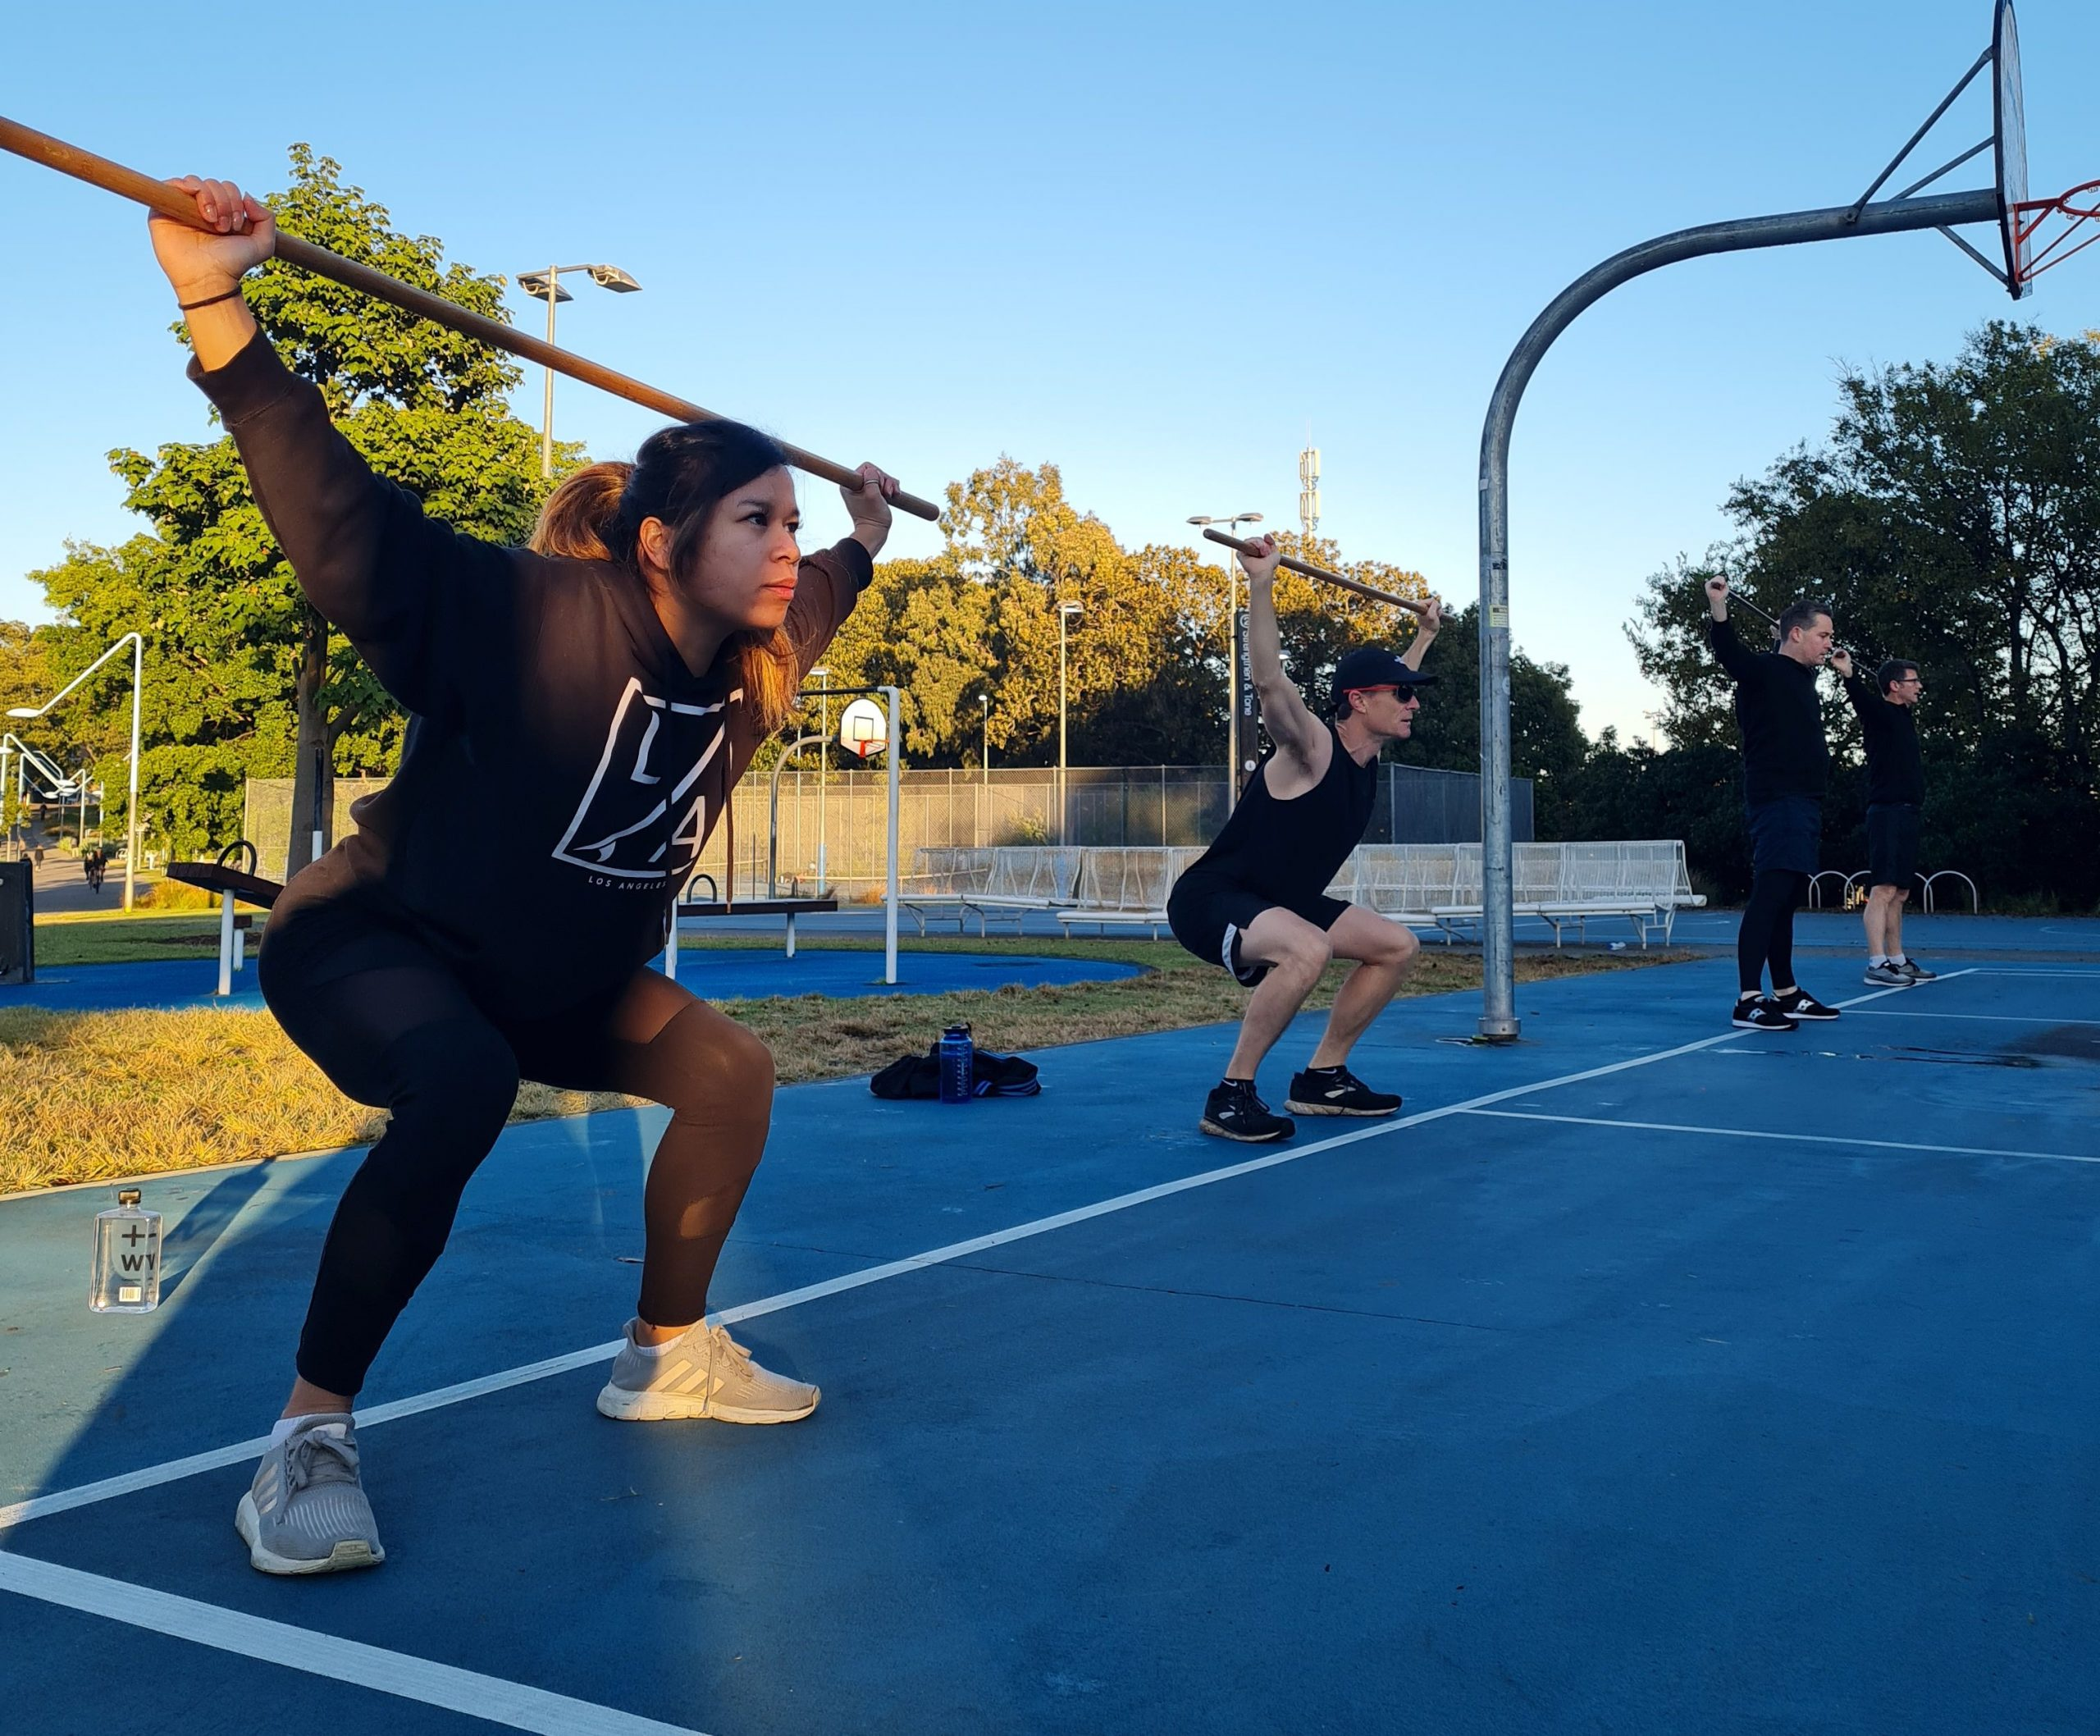 stretching outdoor fitness class